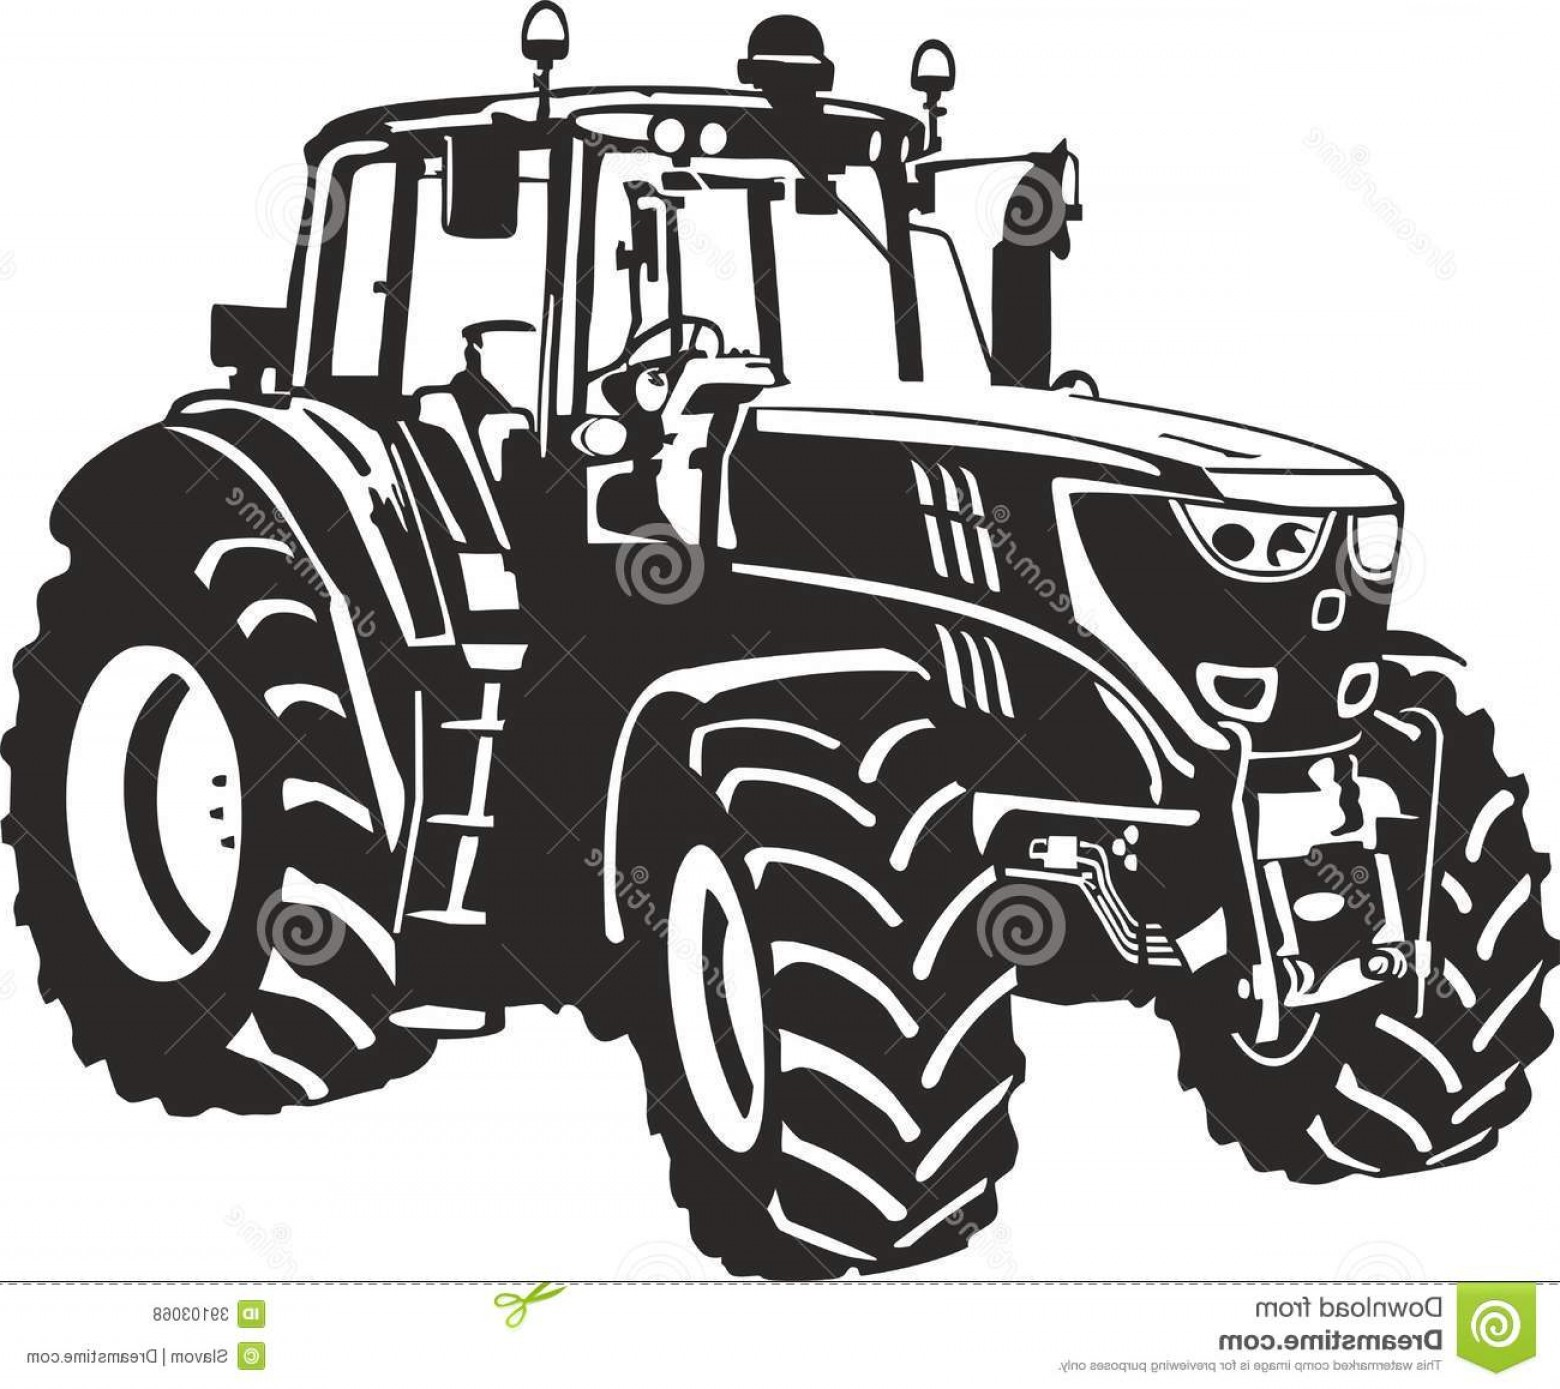 Tractor Silhouette Vector Art: Royalty Free Stock Photos Tractor Vector Illustration Image